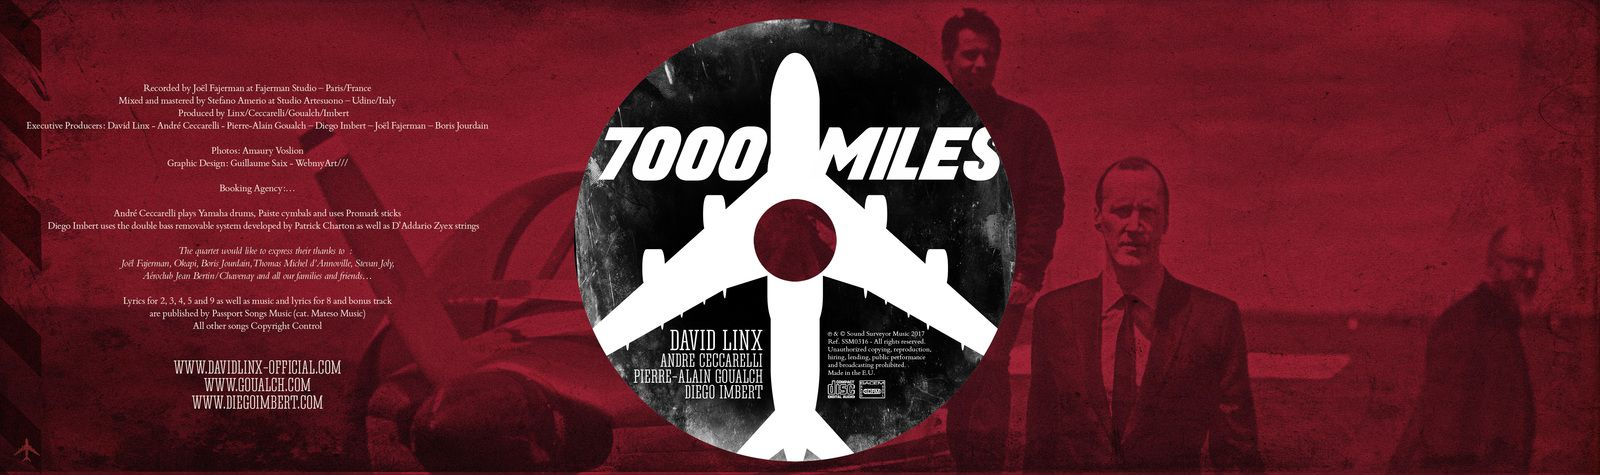 David Linx - 7000 Miles / The WordSmith